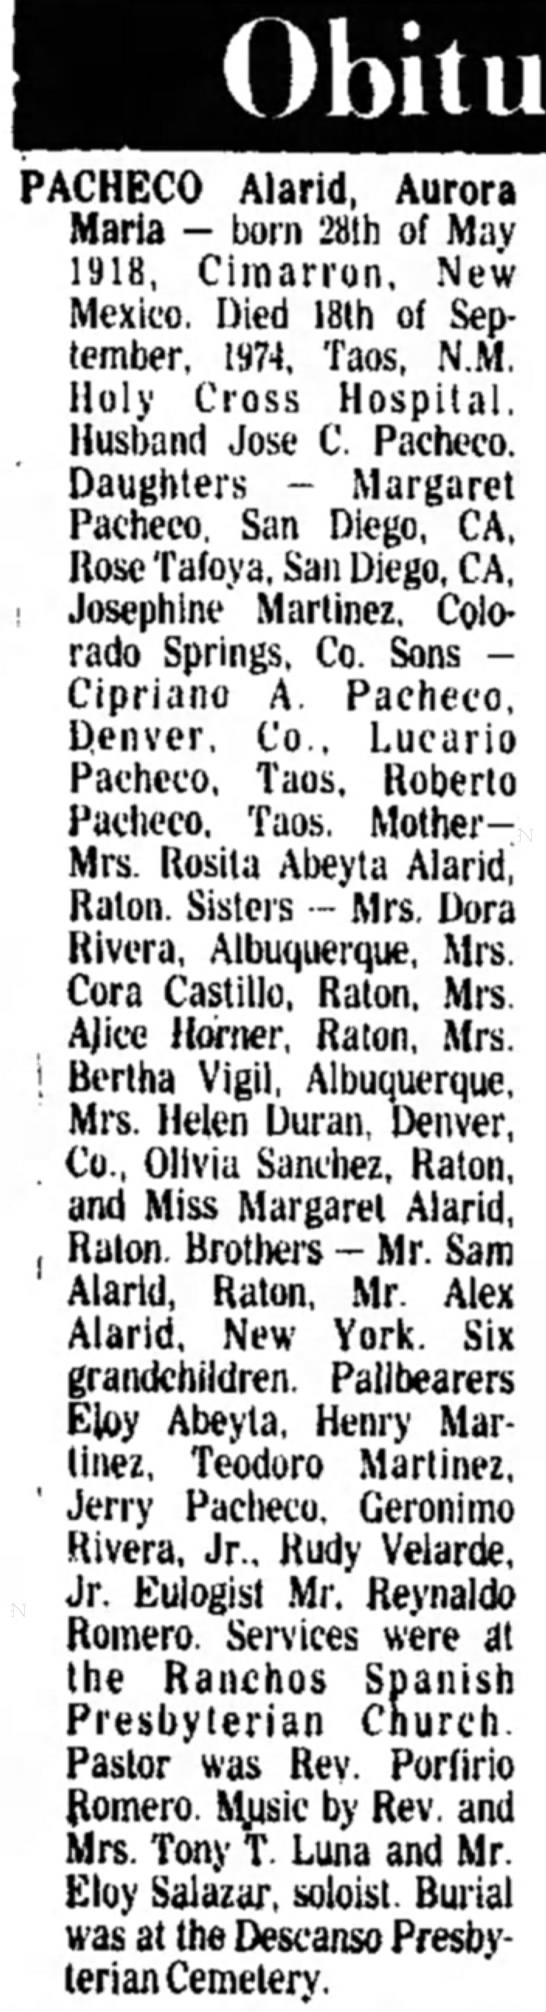 Aurora's Obit - PACHECO Alarid, Aurora Maria - born 28th of May...